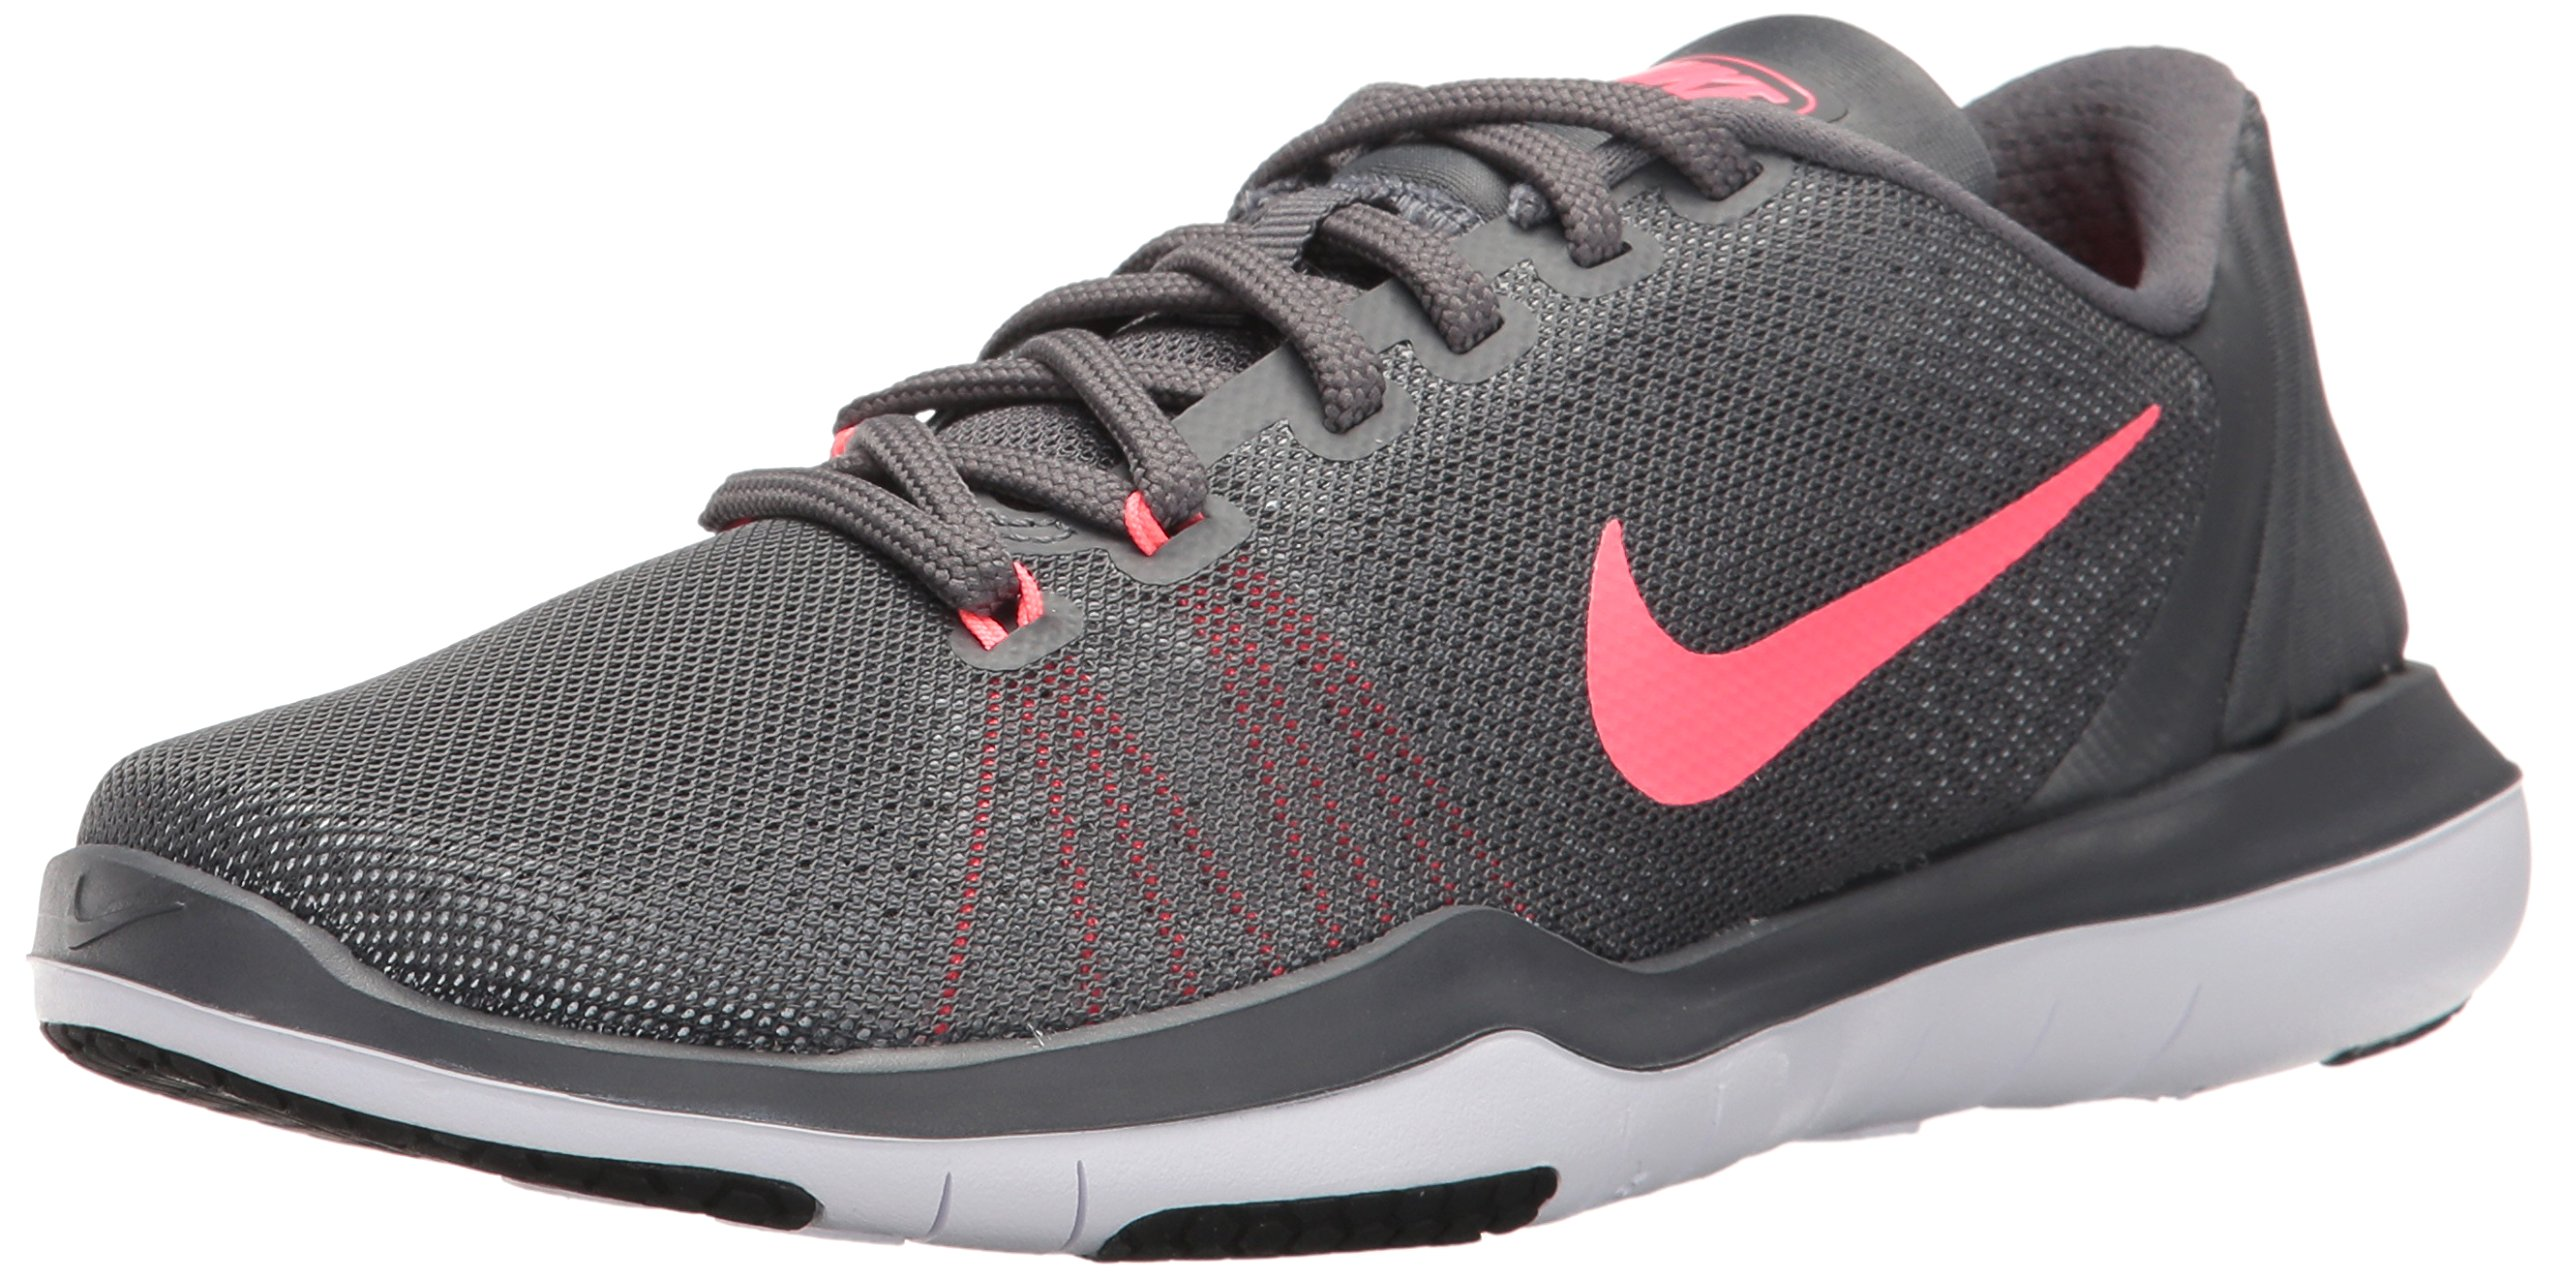 a06e7379a817a Galleon - NIKE Women s Flex Supreme TR 5 Cross Training Shoe